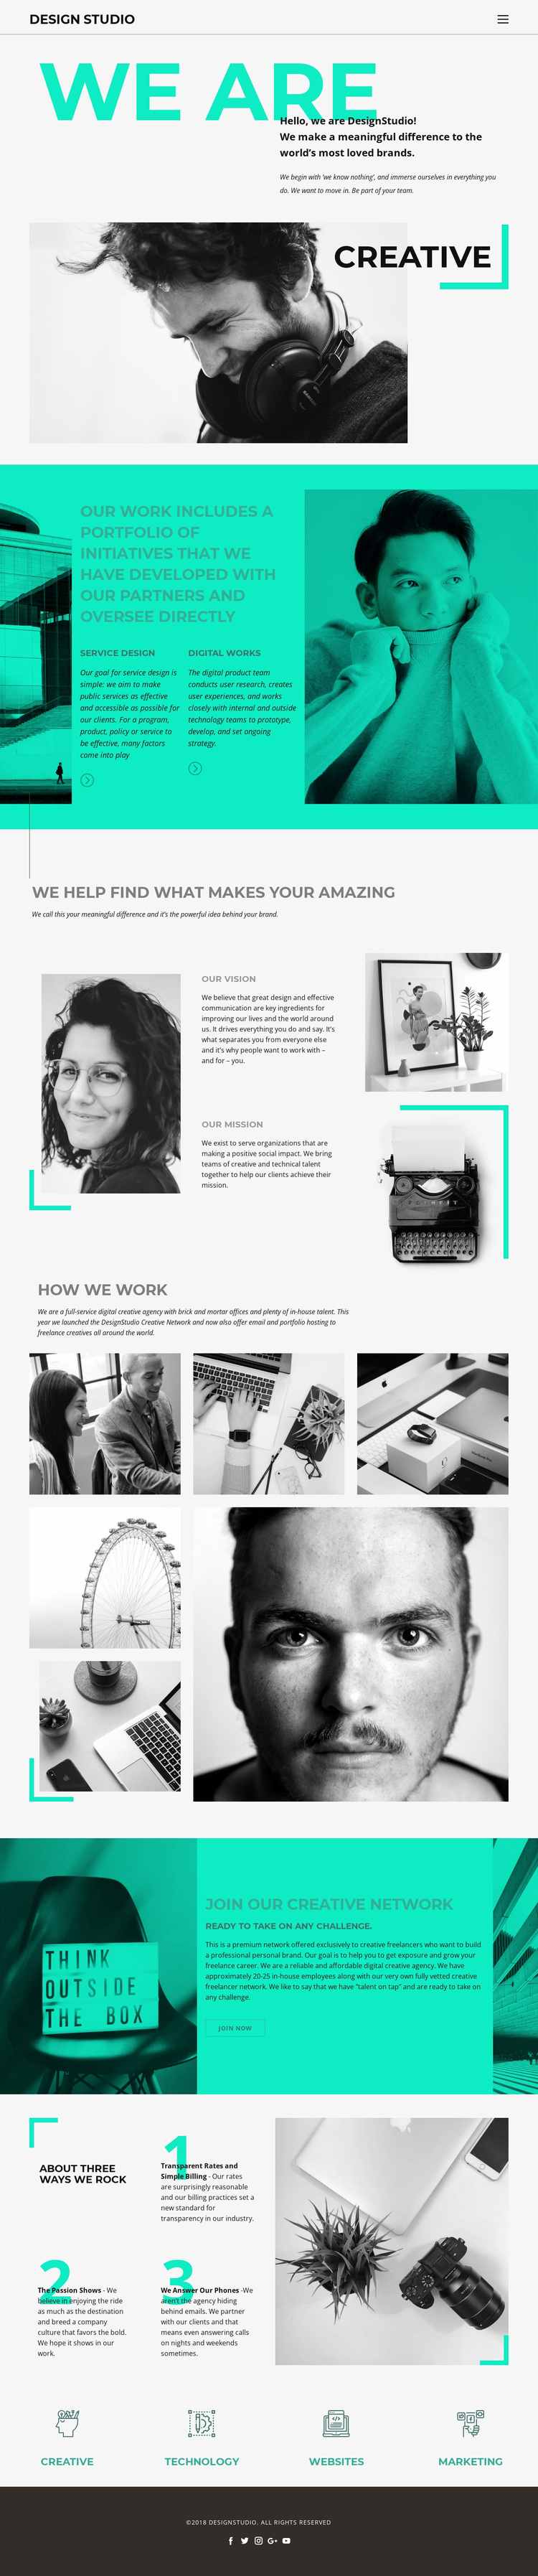 We are creative business Landing Page